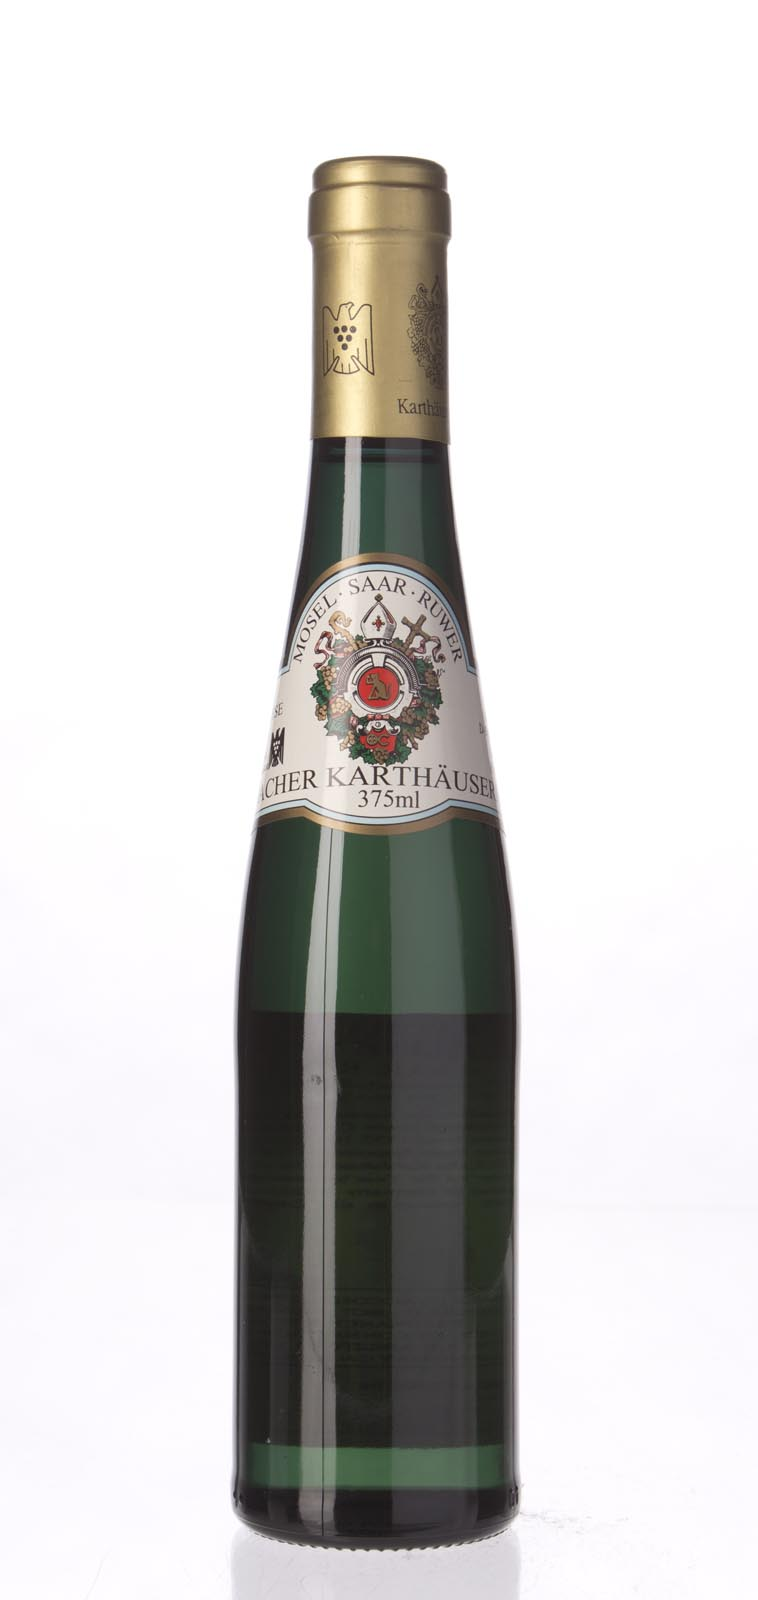 Karthauserhof Eitelsbacher Karthauserhofberg Riesling Auslese Gold Capsule #43 2003, 375ml (WA89) from The BPW - Merchants of rare and fine wines.